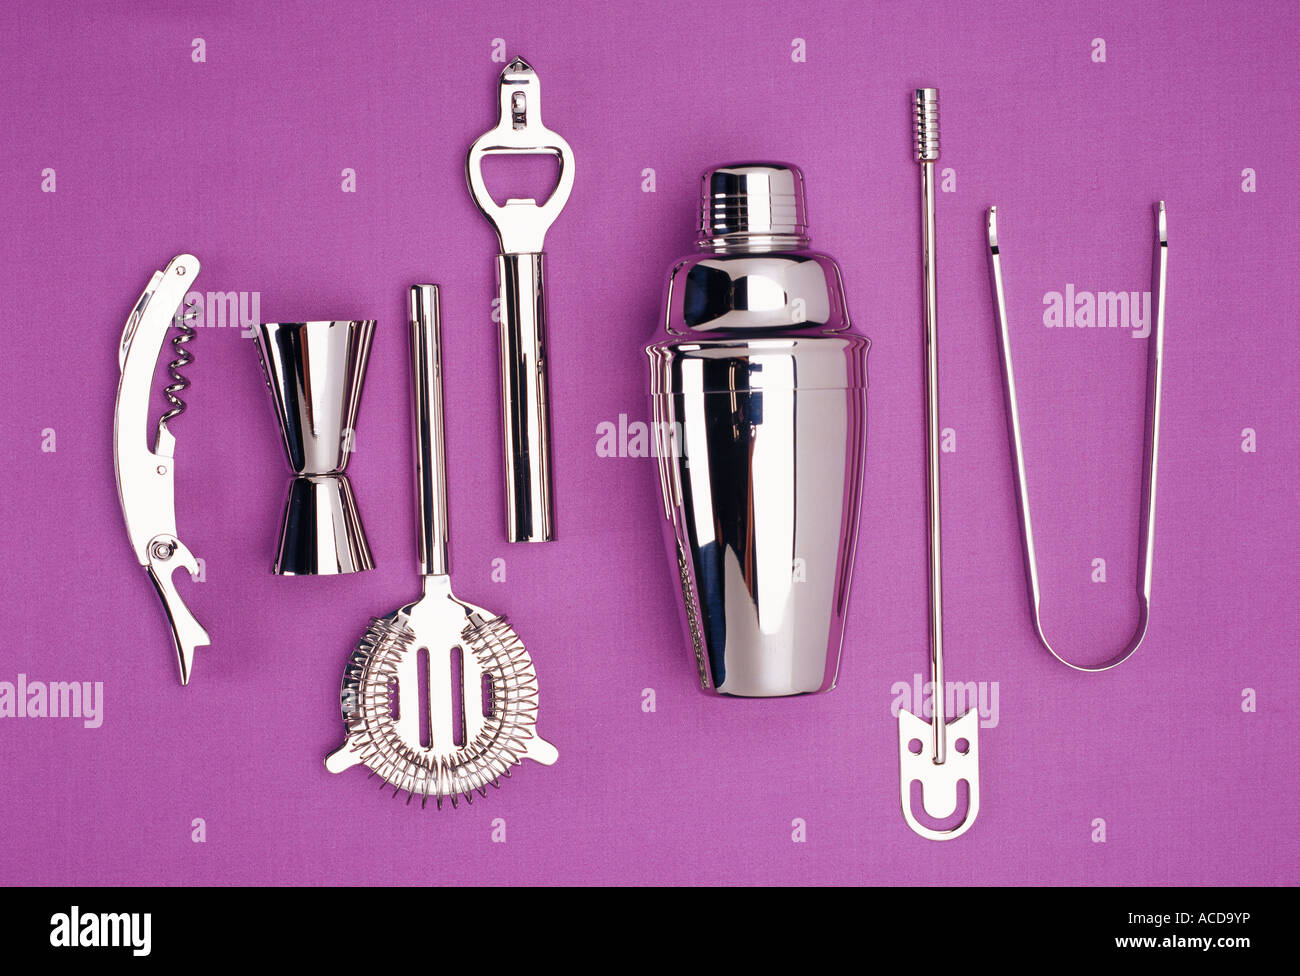 Kitchen utensils in stainless steel on a purple background ...